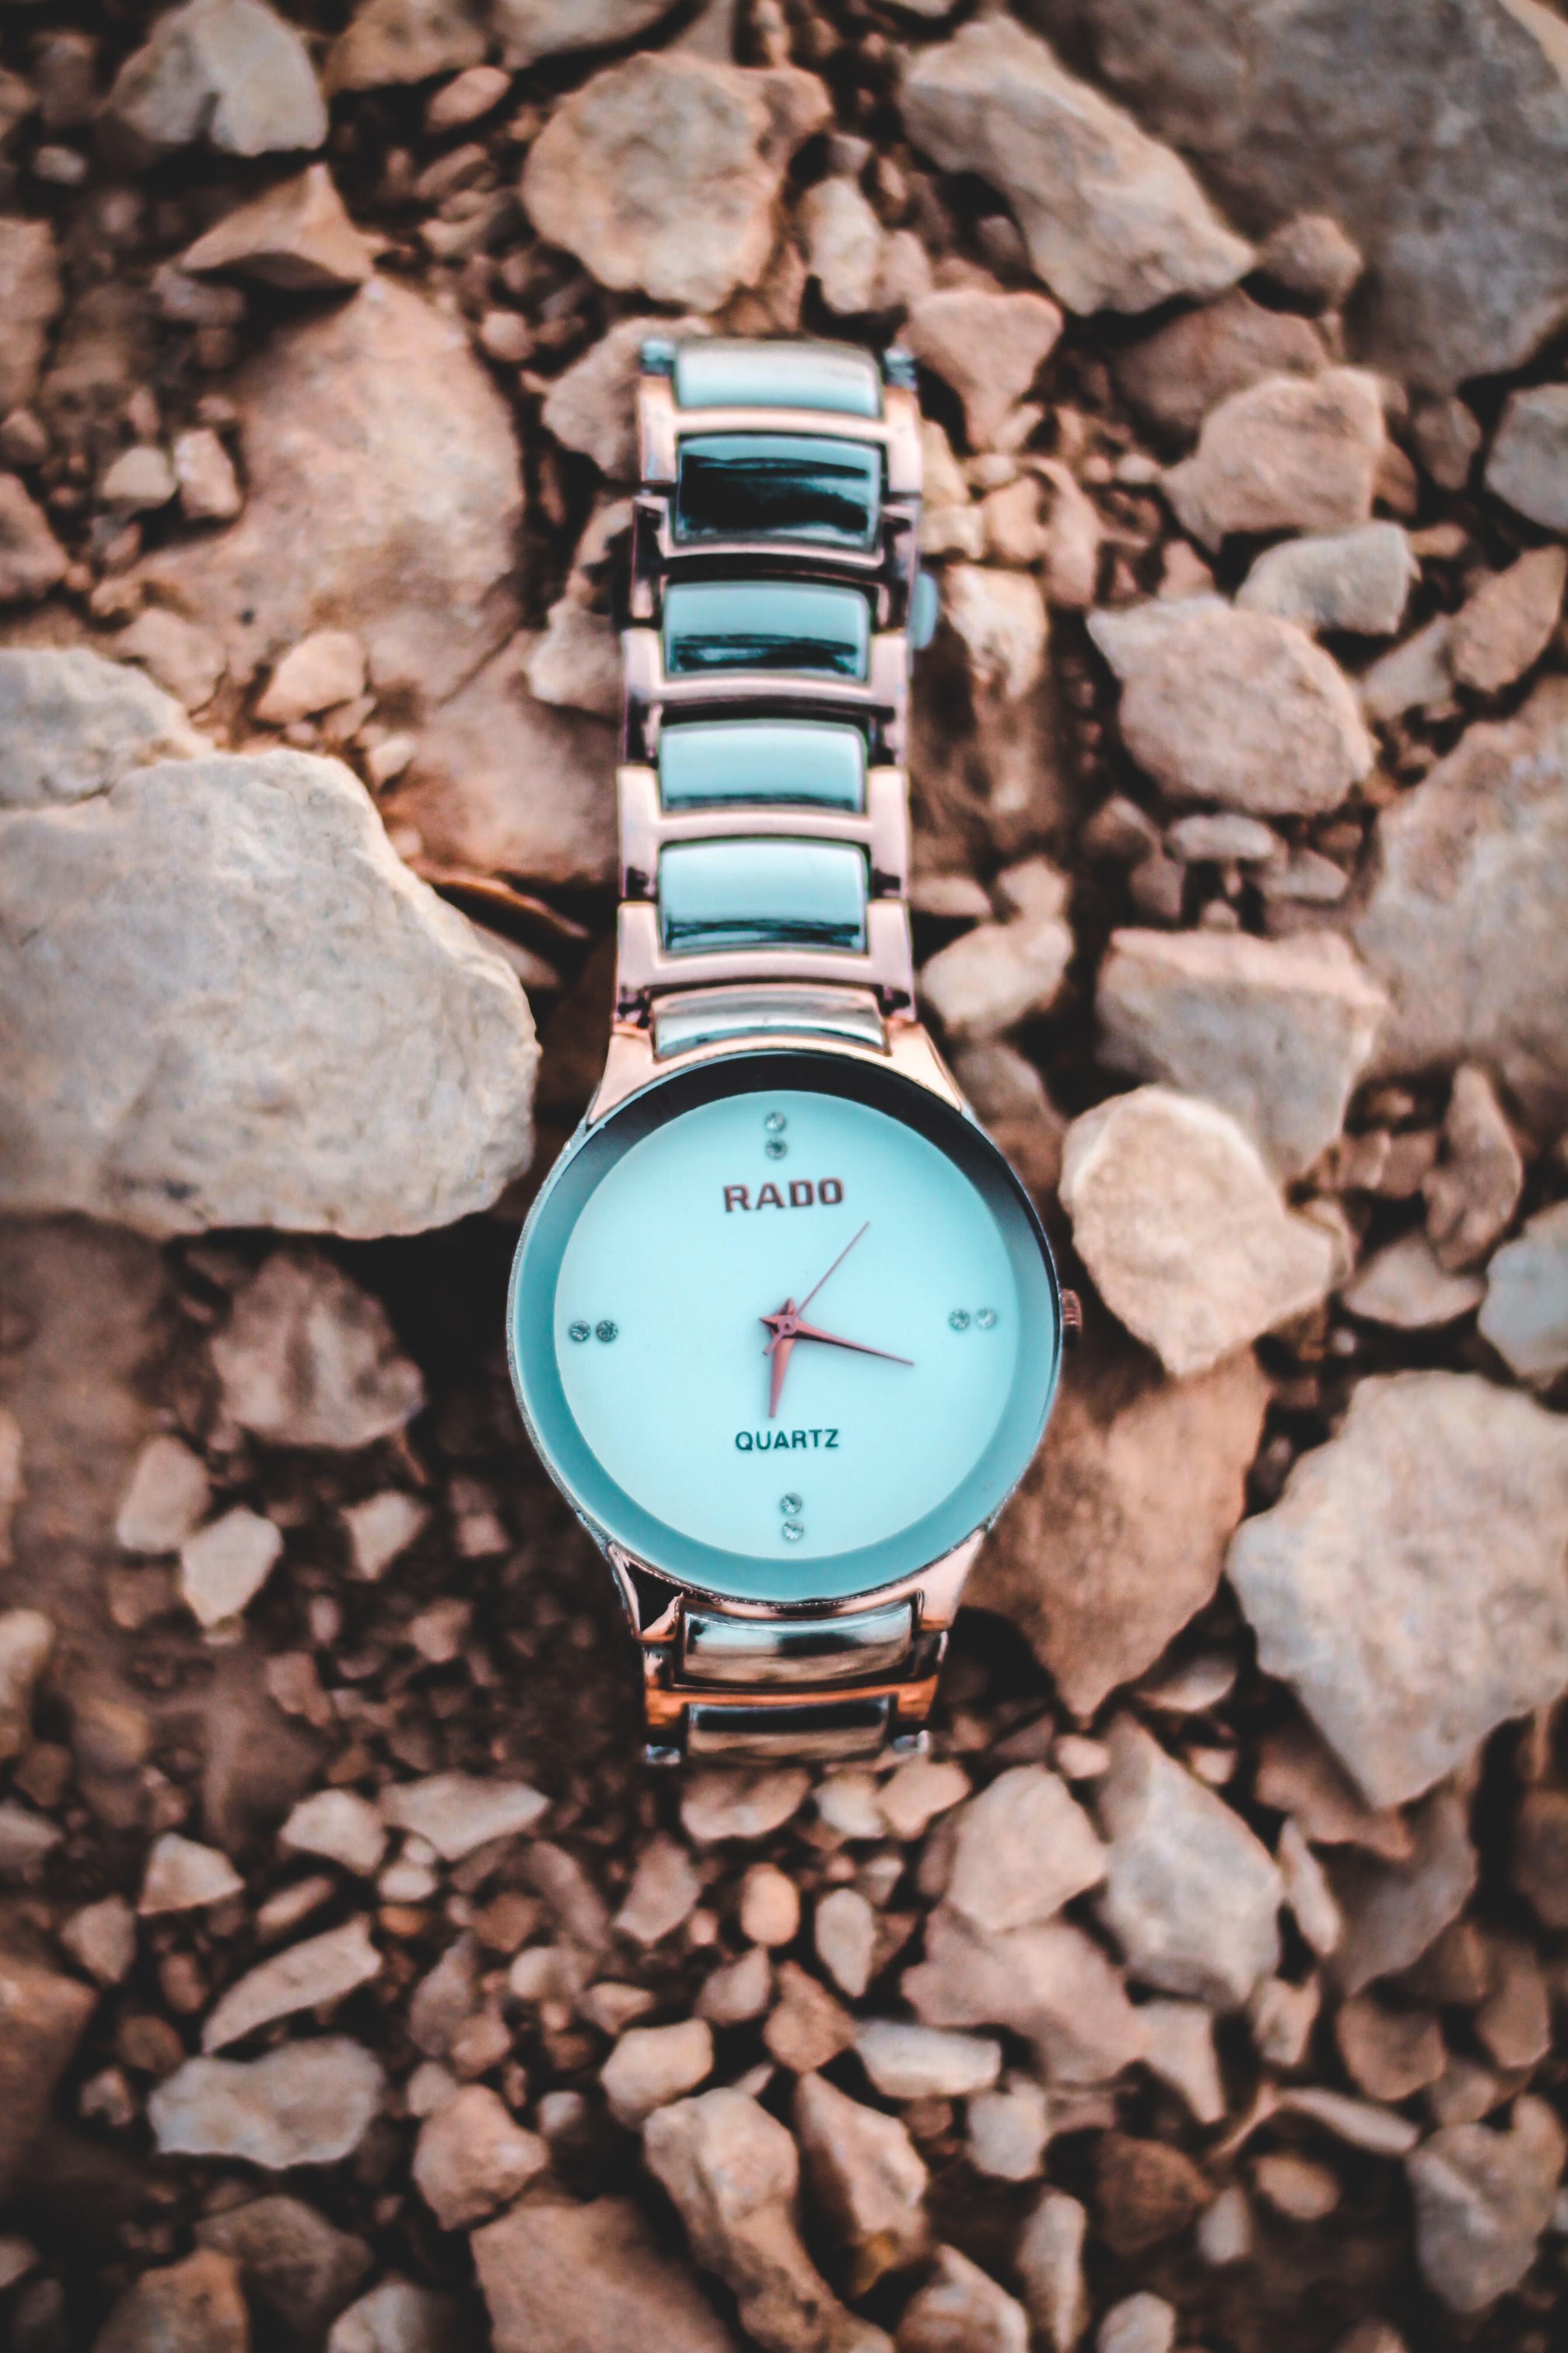 Round Gold-colored Rado Analog Watch With Link Band